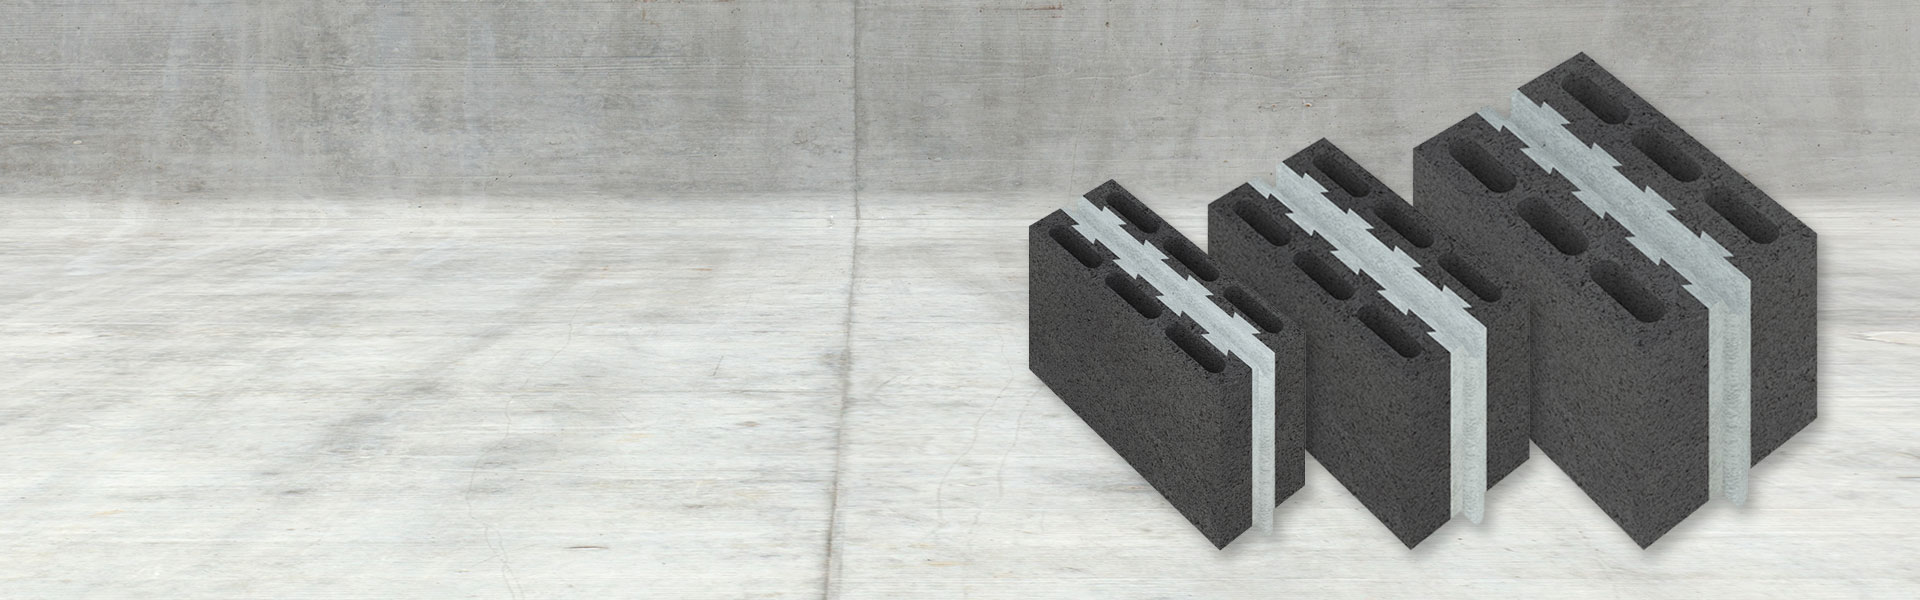 Thermally Insulated Hollow Blocks